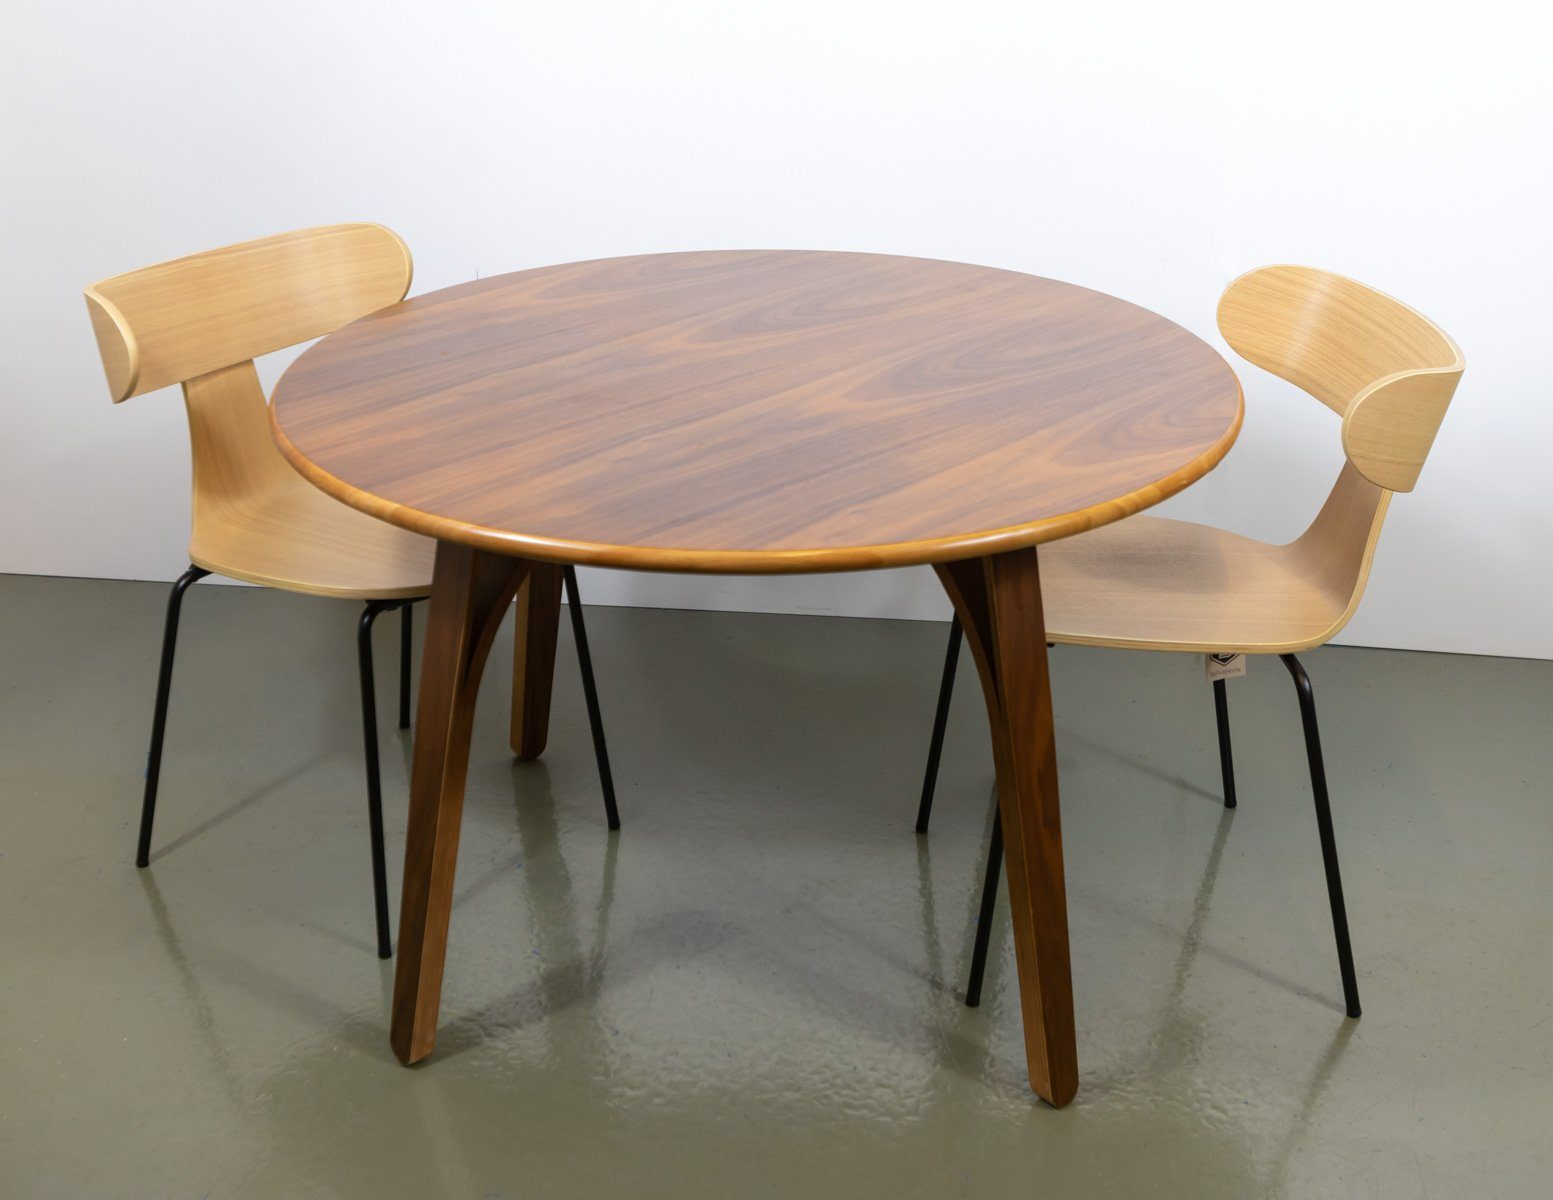 Dining Table & Chairs - 2x Brand New De Eekhoorn Form Dining Chairs